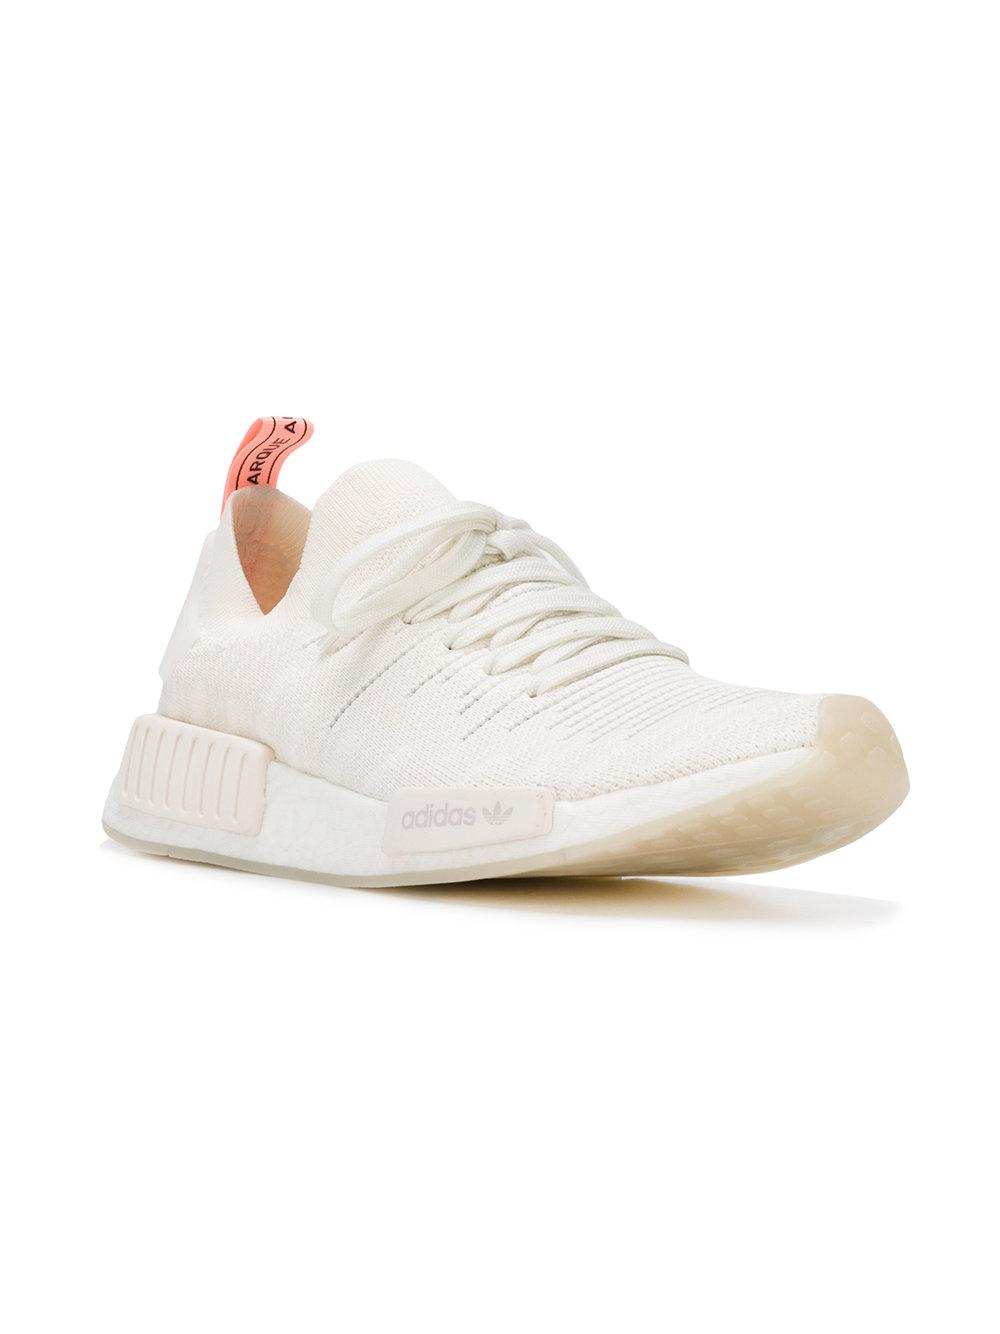 1e9185d08 Lyst - adidas Originals Nmd r1 Stlt Primeknit Sneakers in White